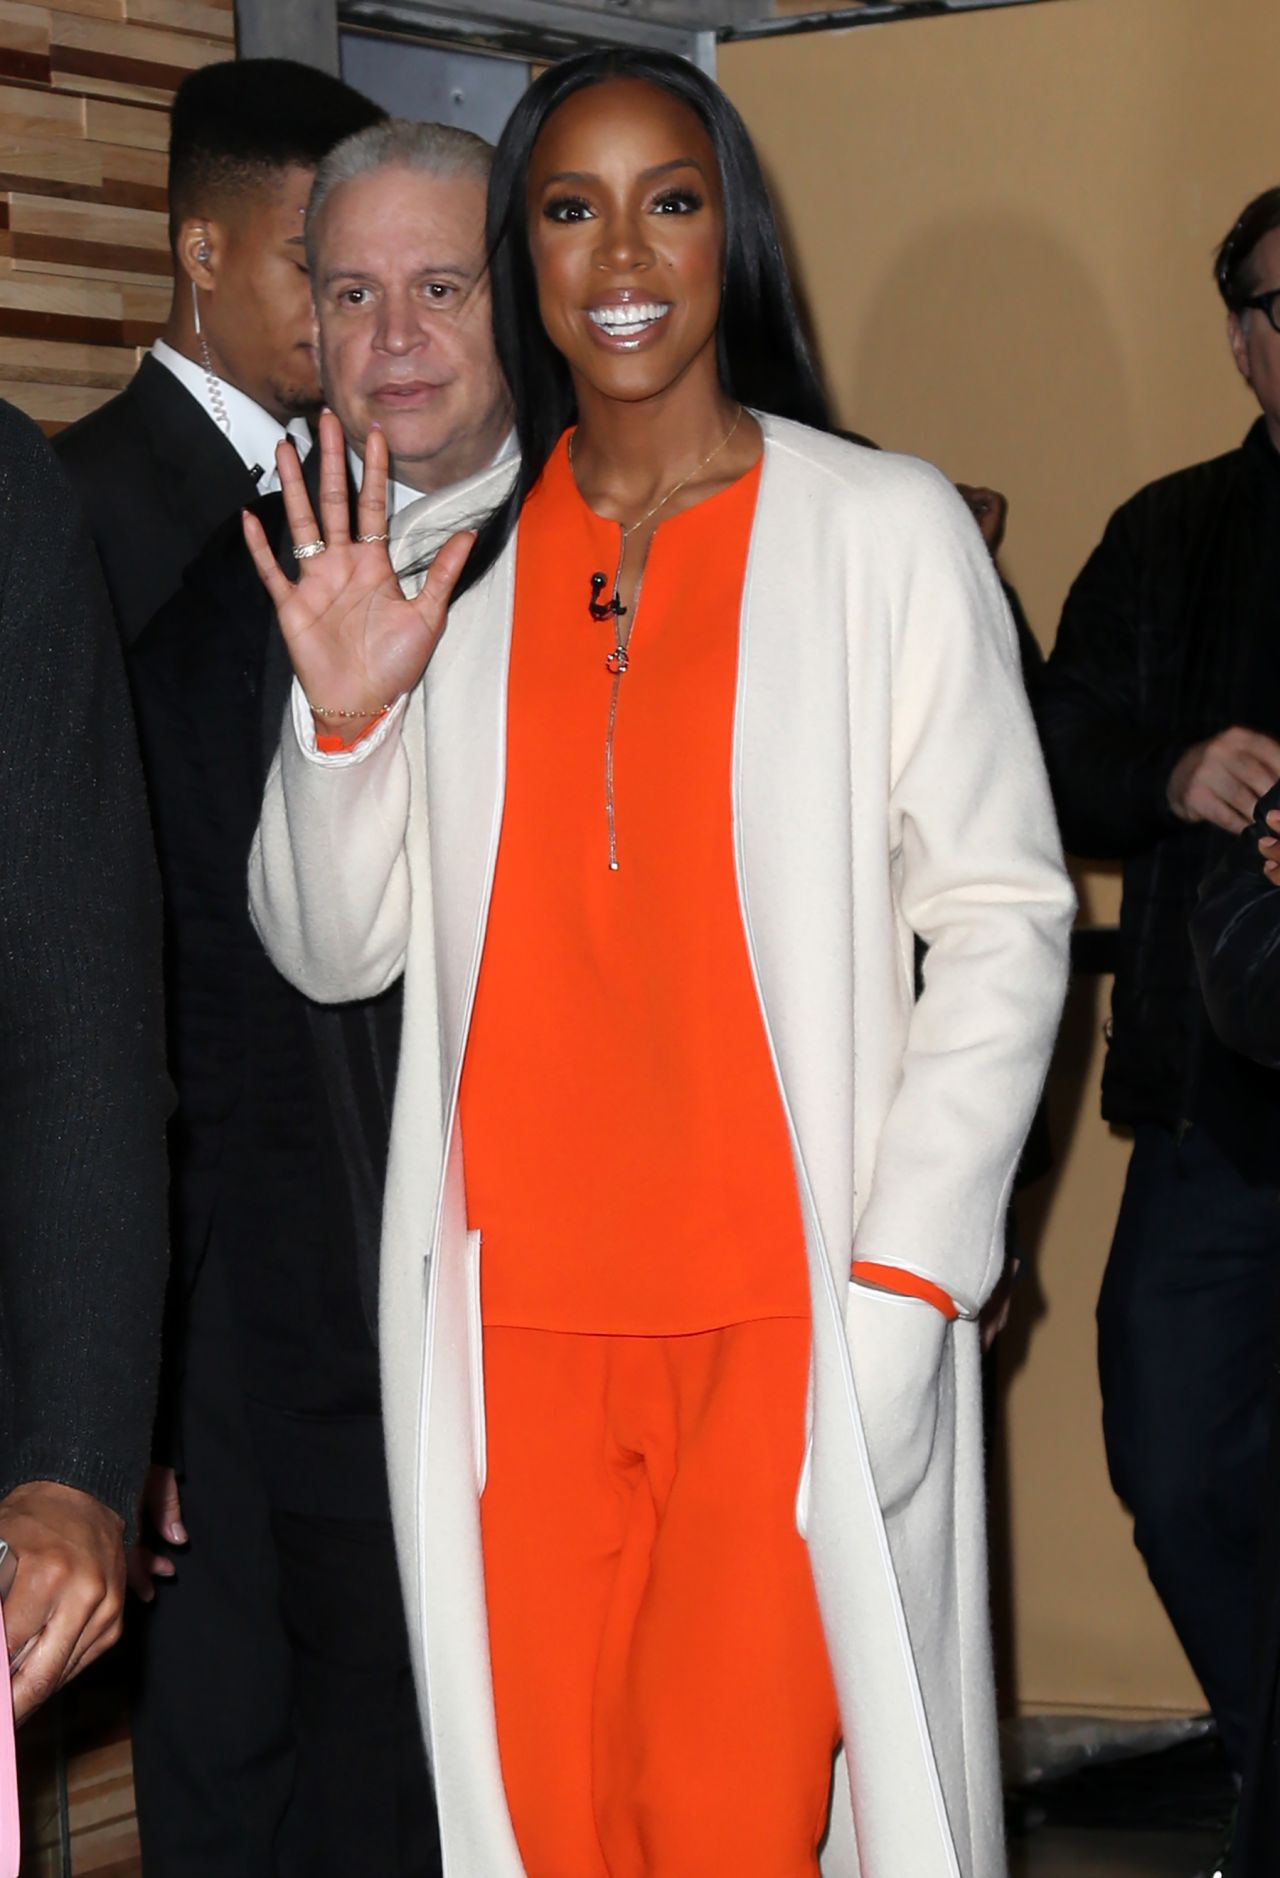 kelly-rowland-at-good-morning-america-in-new-york-city-3-30-2016-5